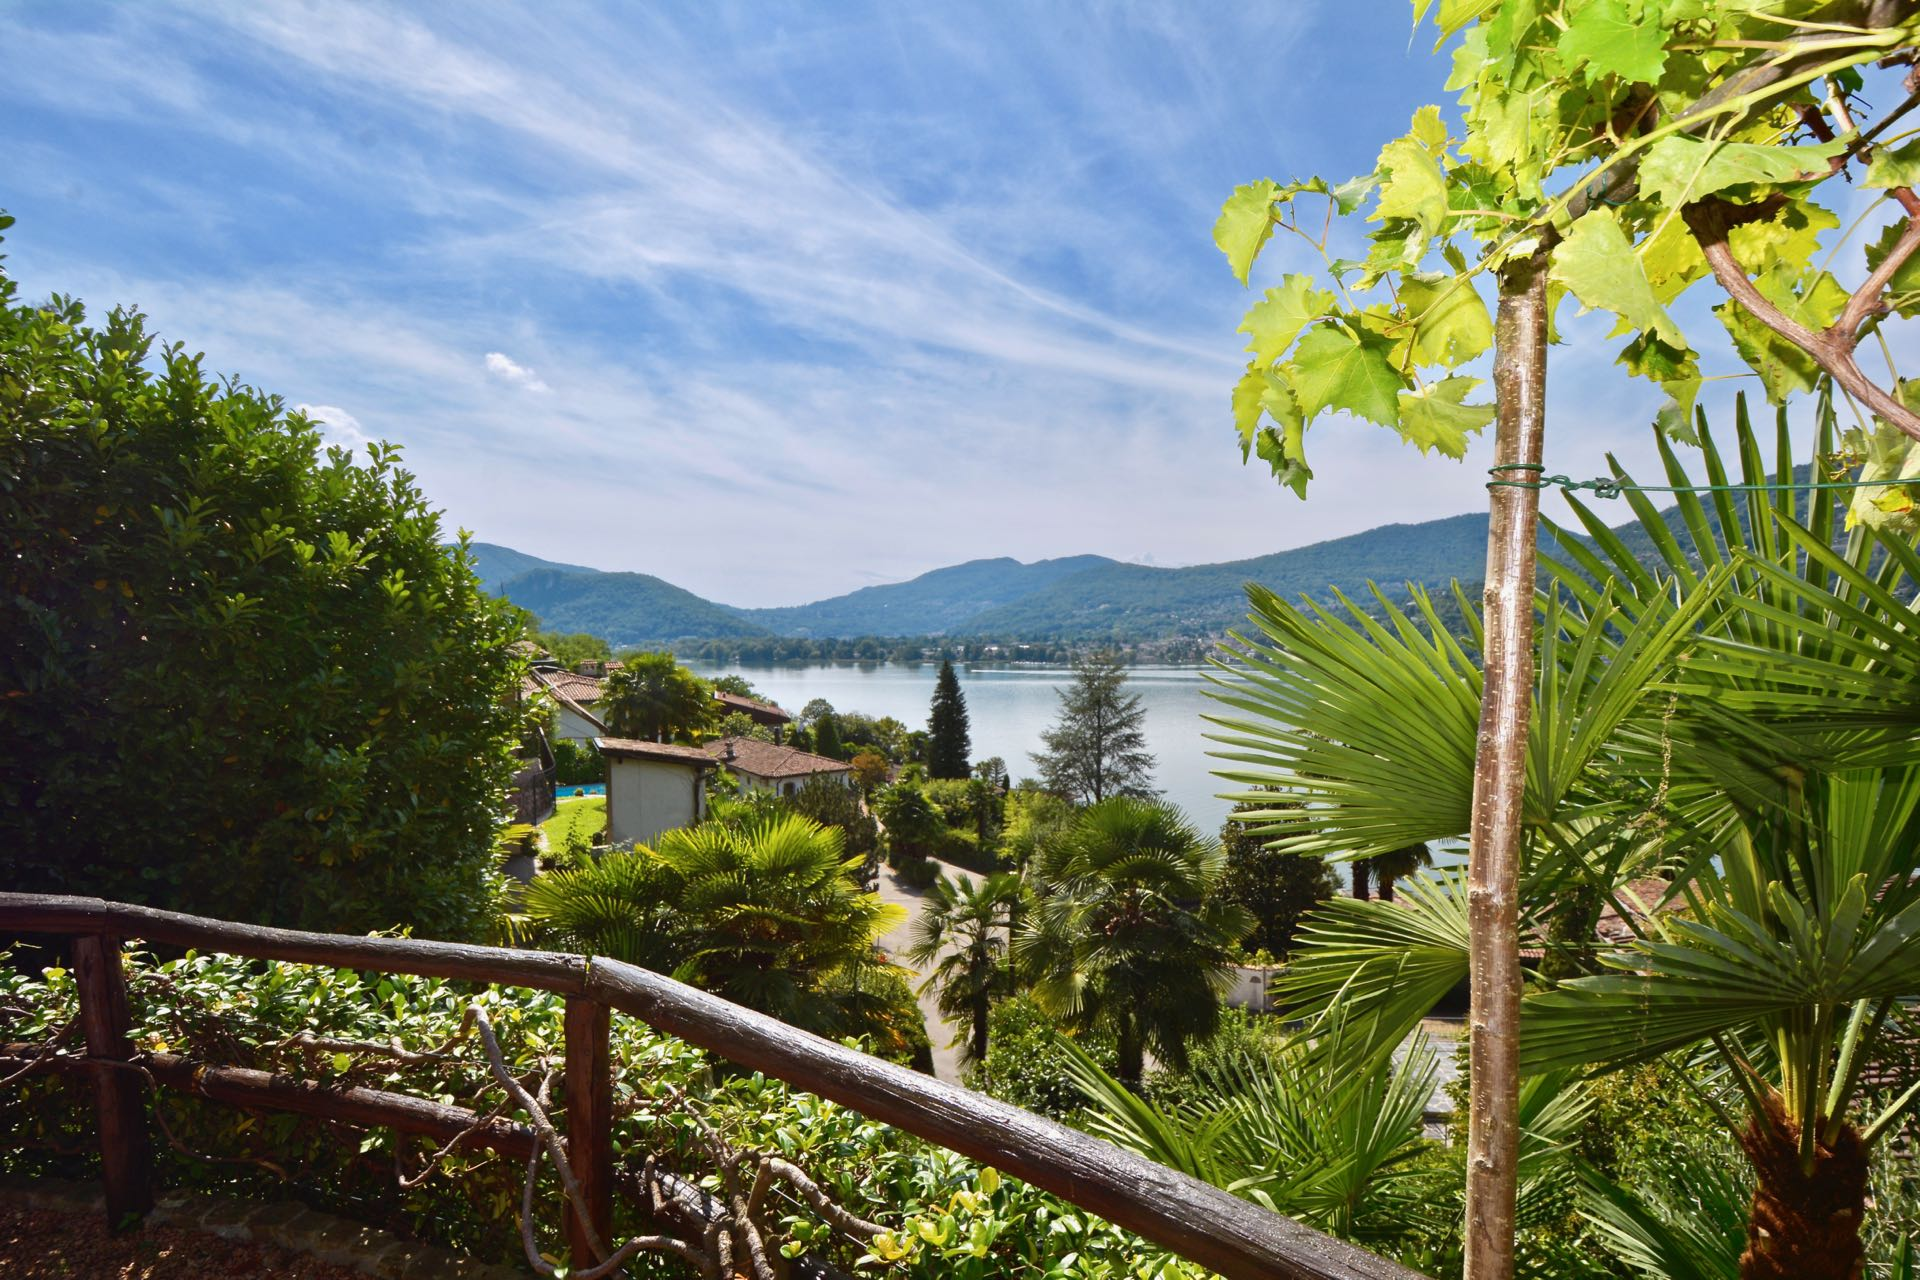 Panoramic view to Lake Lugano from the terrace,Duplex apartment in Montagnola, Switzerland for sale with wonderful Lake Lugano view